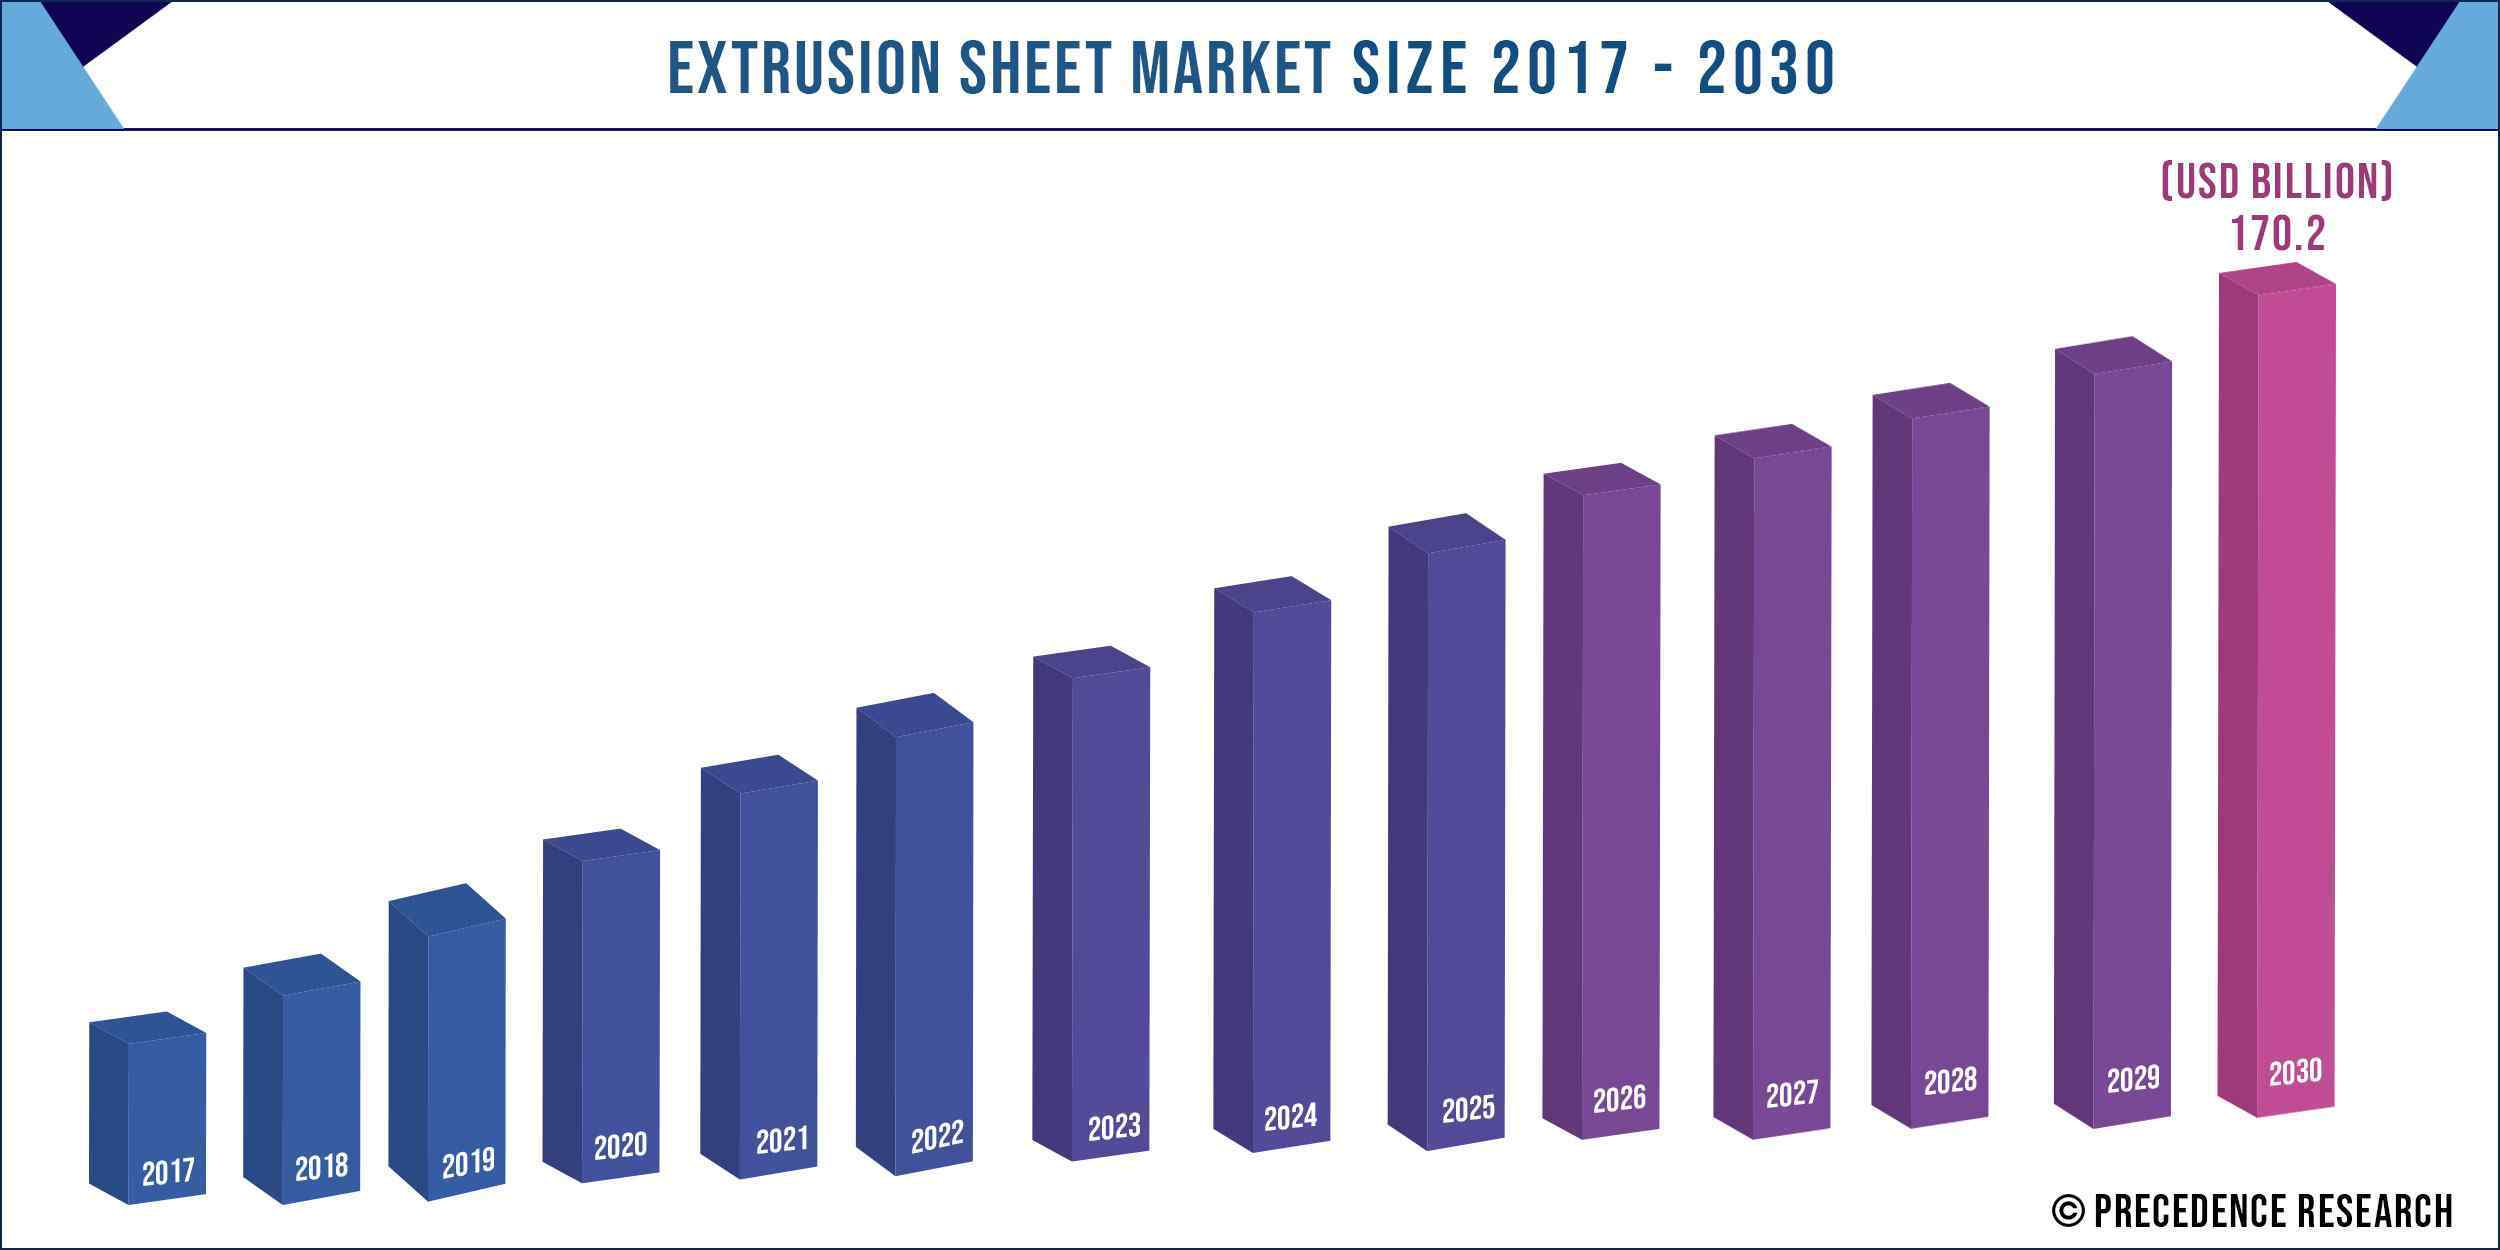 Extrusion Sheet Market Size 2017 to 2030